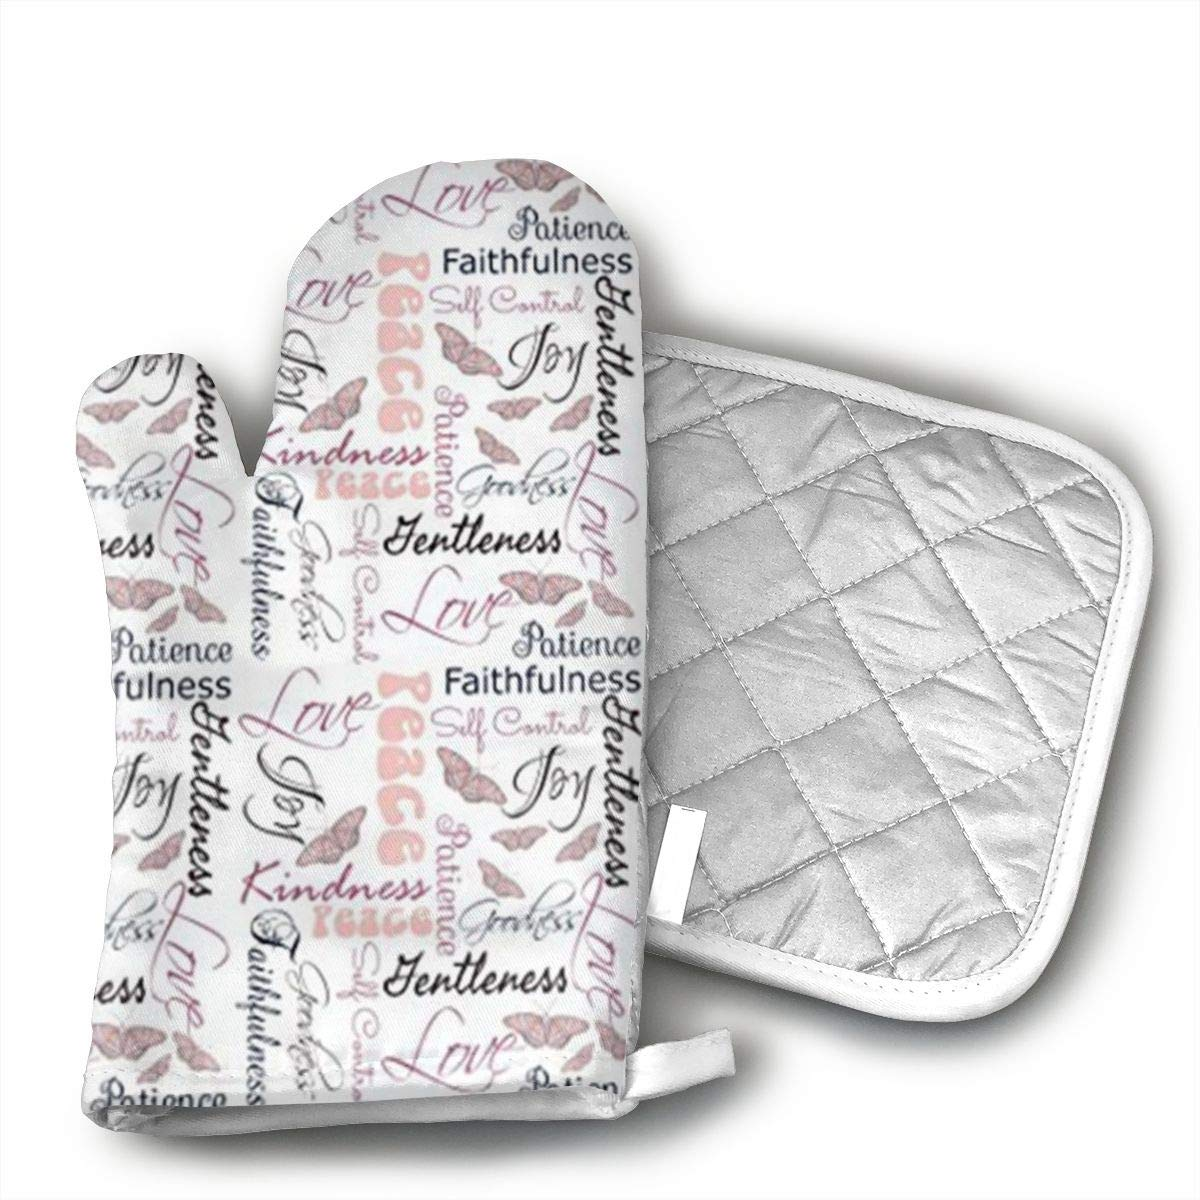 Ksiwo Christian Fruit of The Spirit Butterflies Oven Mitts and Pot Holders Heat Resistant Gloves to Oven Gloves for Safe BBQ Cook Baking Grilling